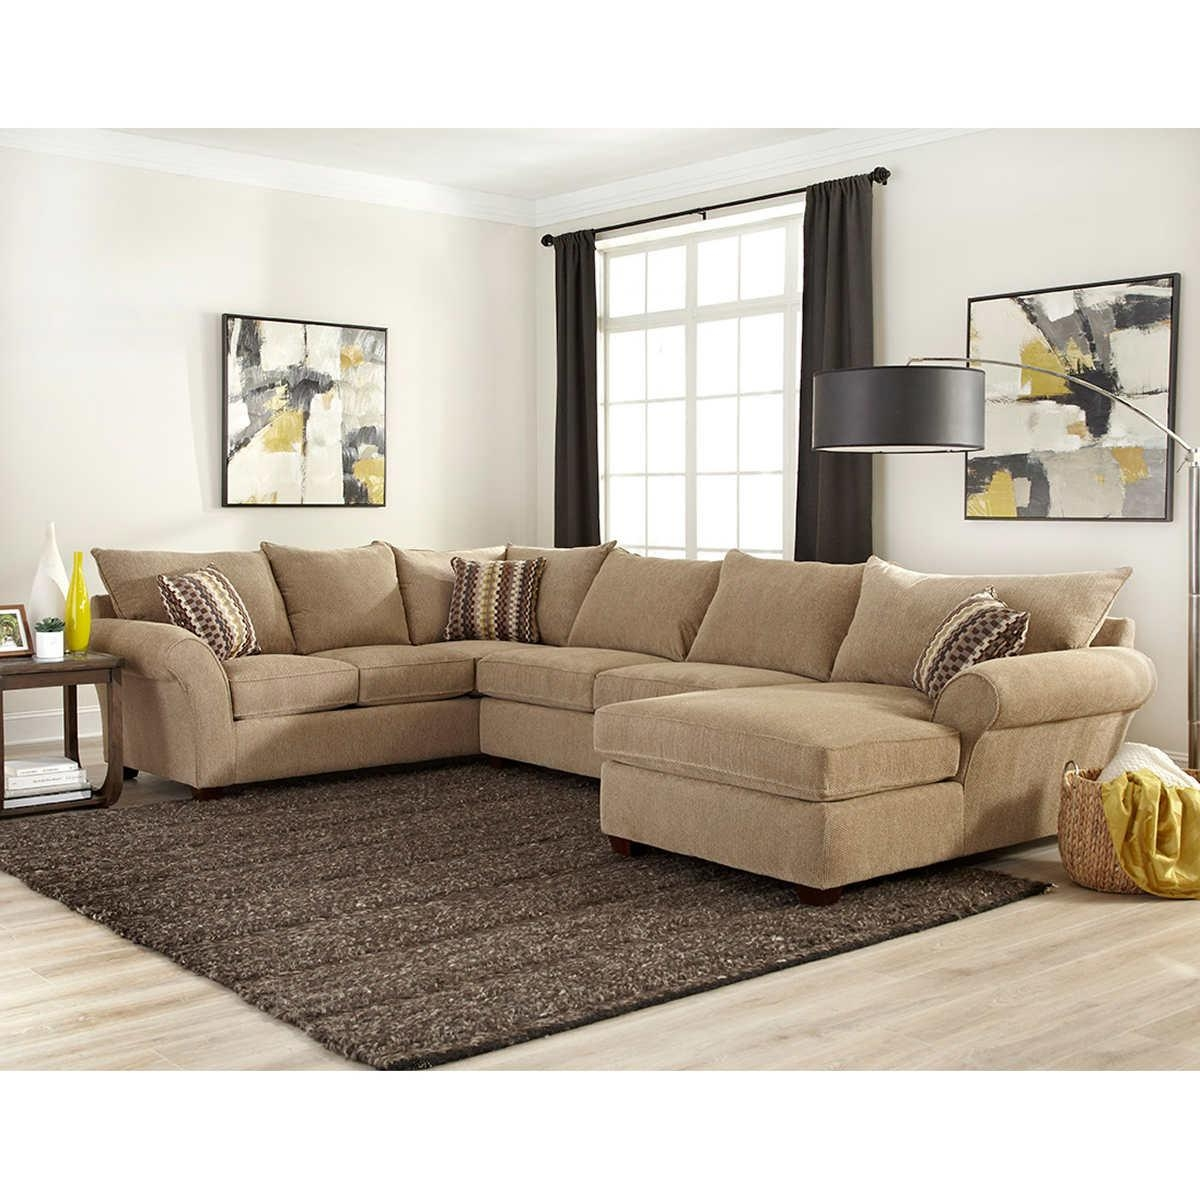 Fabric Sectional Sofa | Best Sofas Ideas – Sofascouch With Regard To Cloth Sectional Sofas (View 10 of 21)